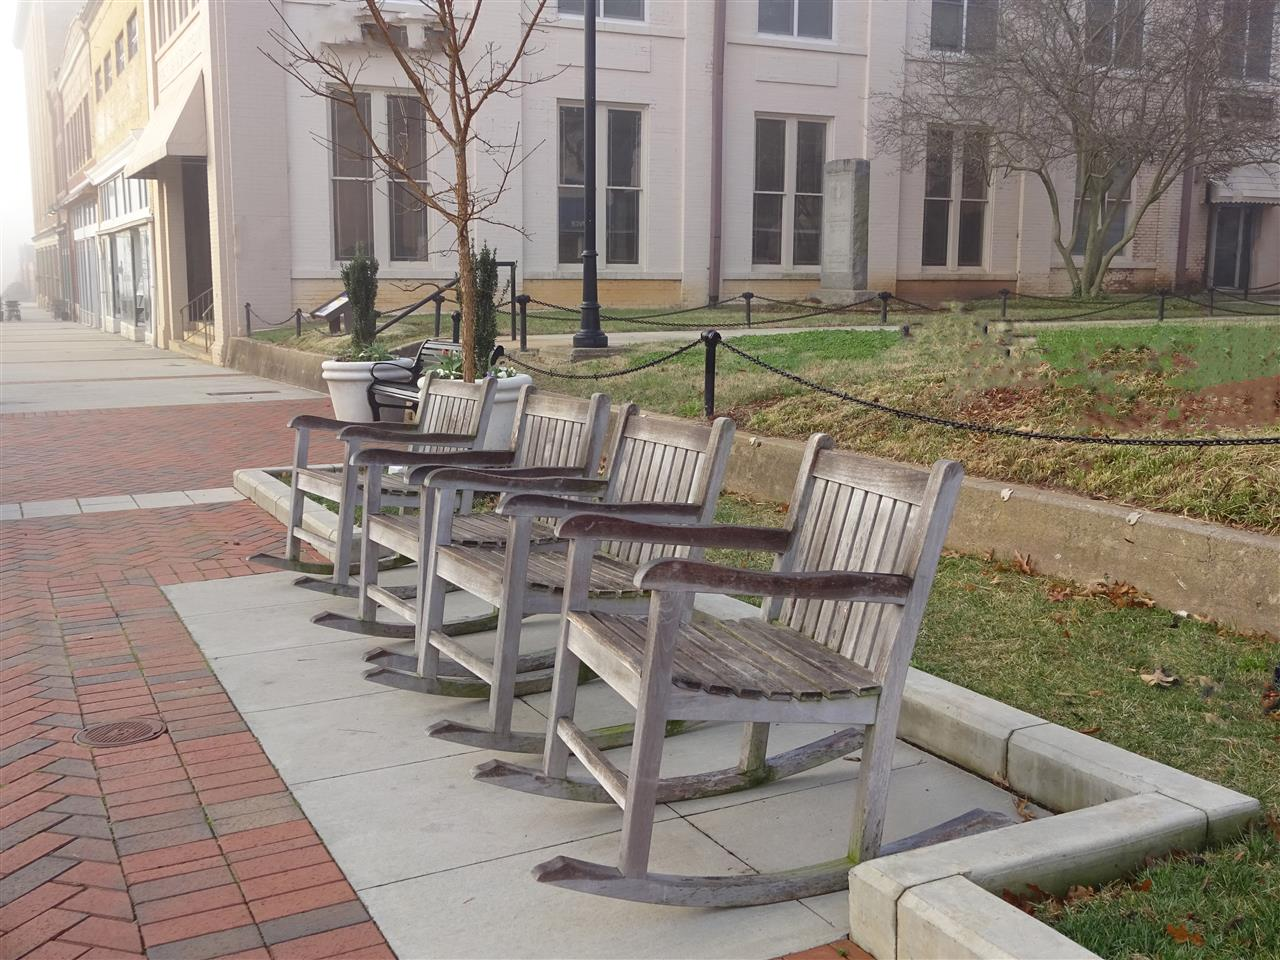 #Statesville #NC #Downtown #Rocking Chairs #Relax